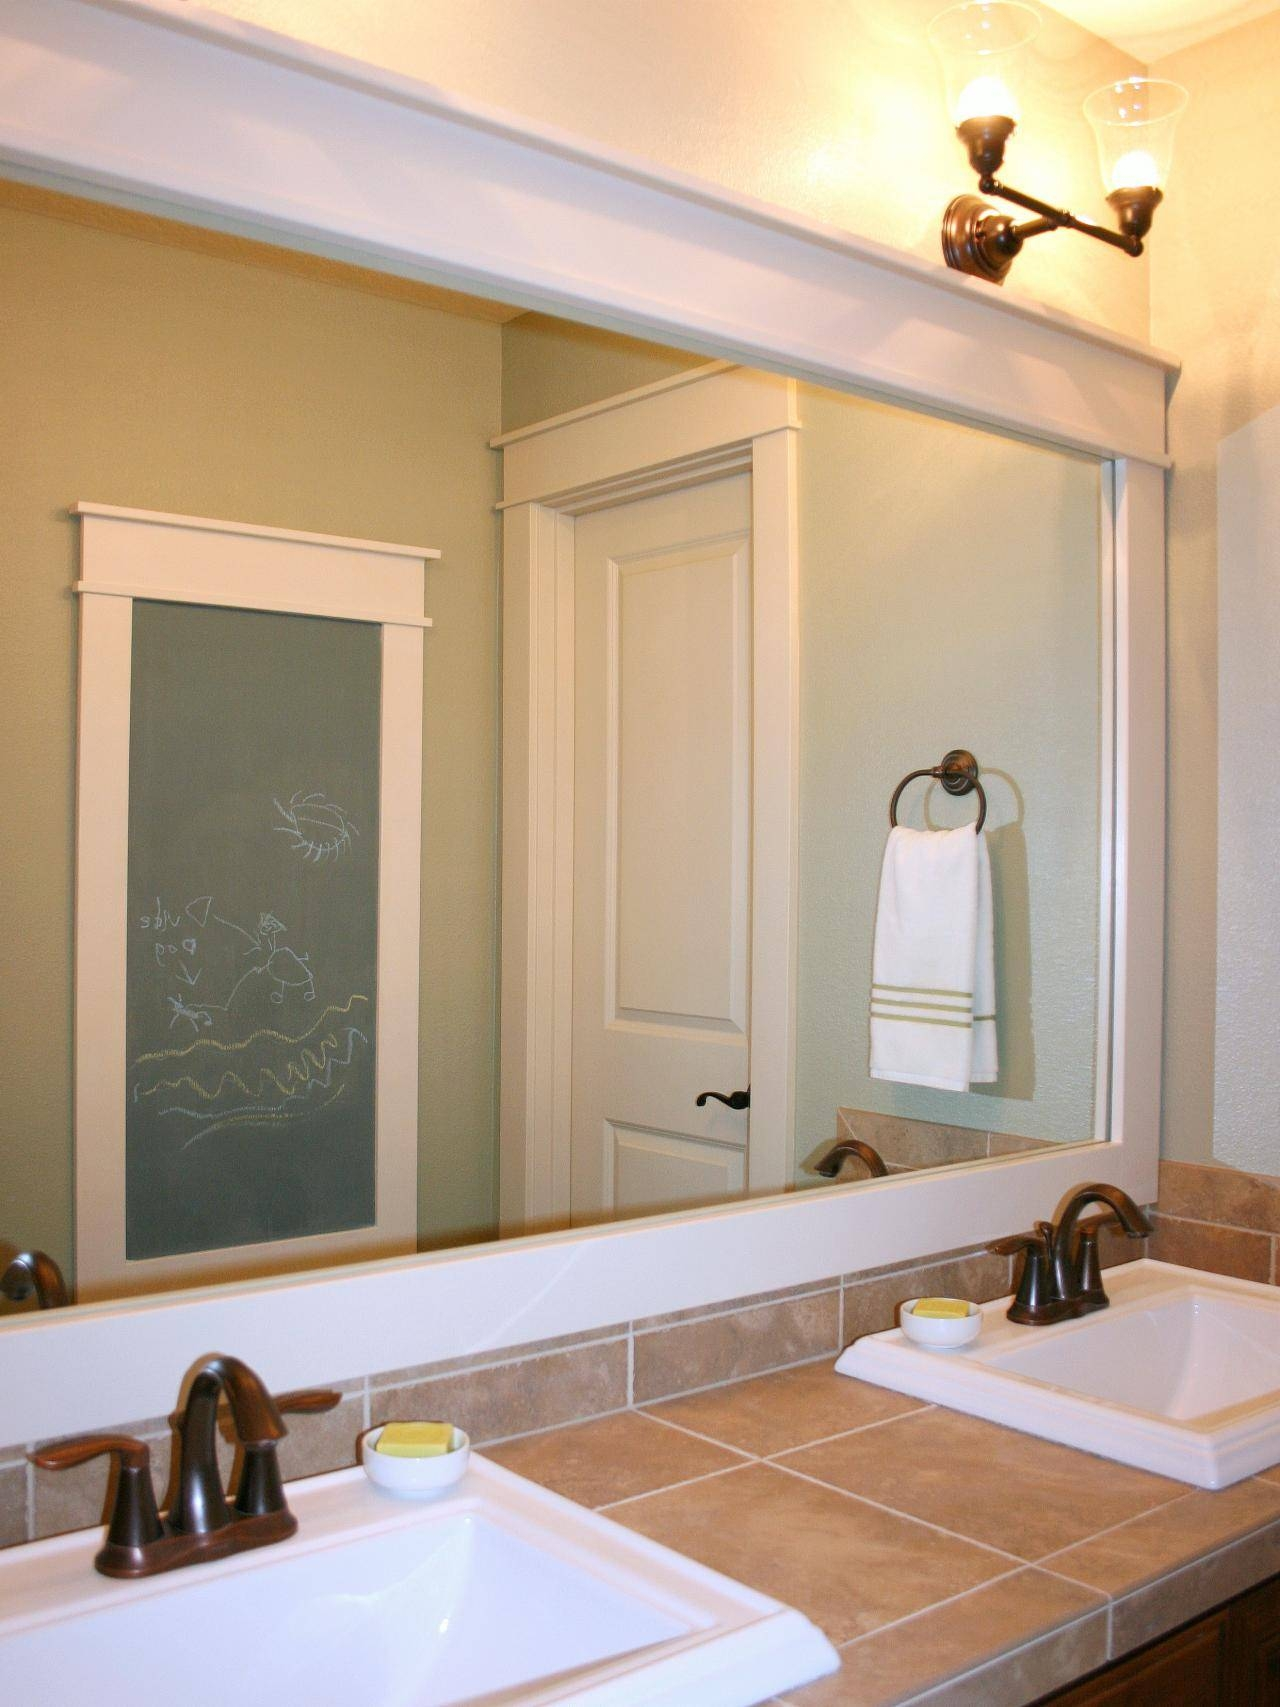 Bathroom: Bathroom Vanity Mirror | Large Framed Bathroom Mirrors inside Venetian Bathroom Mirrors (Image 7 of 25)